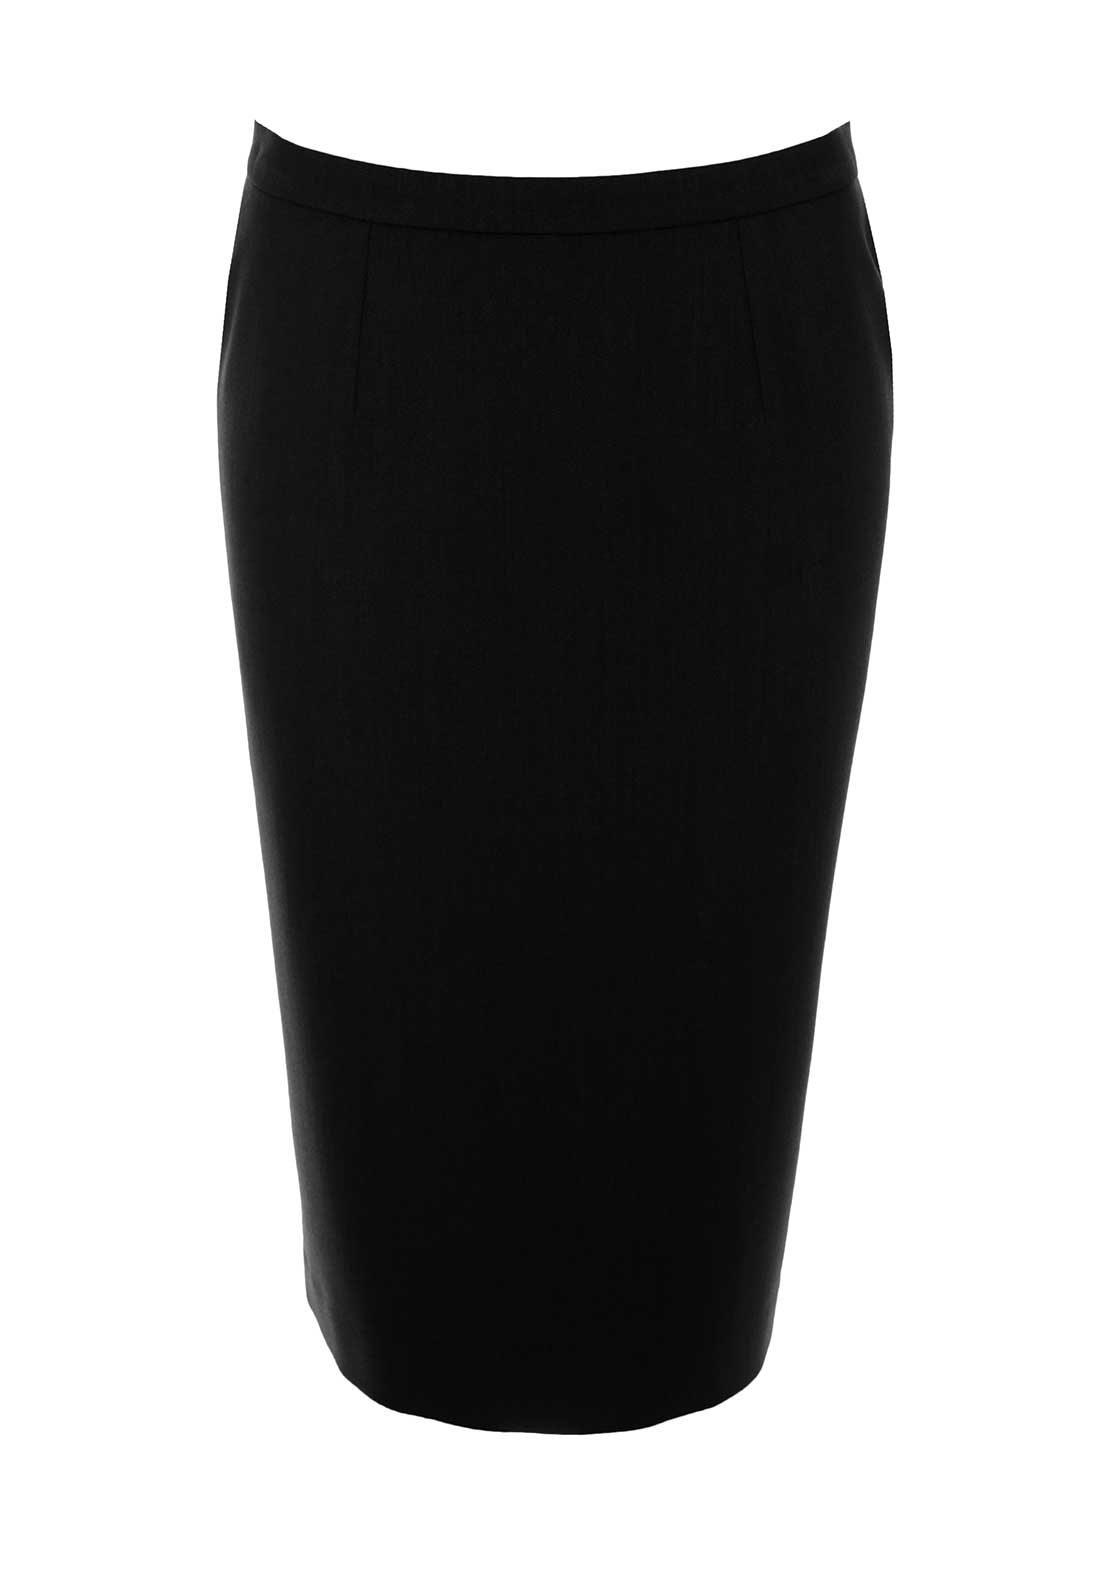 Christina Felix Straight Skirt, Black